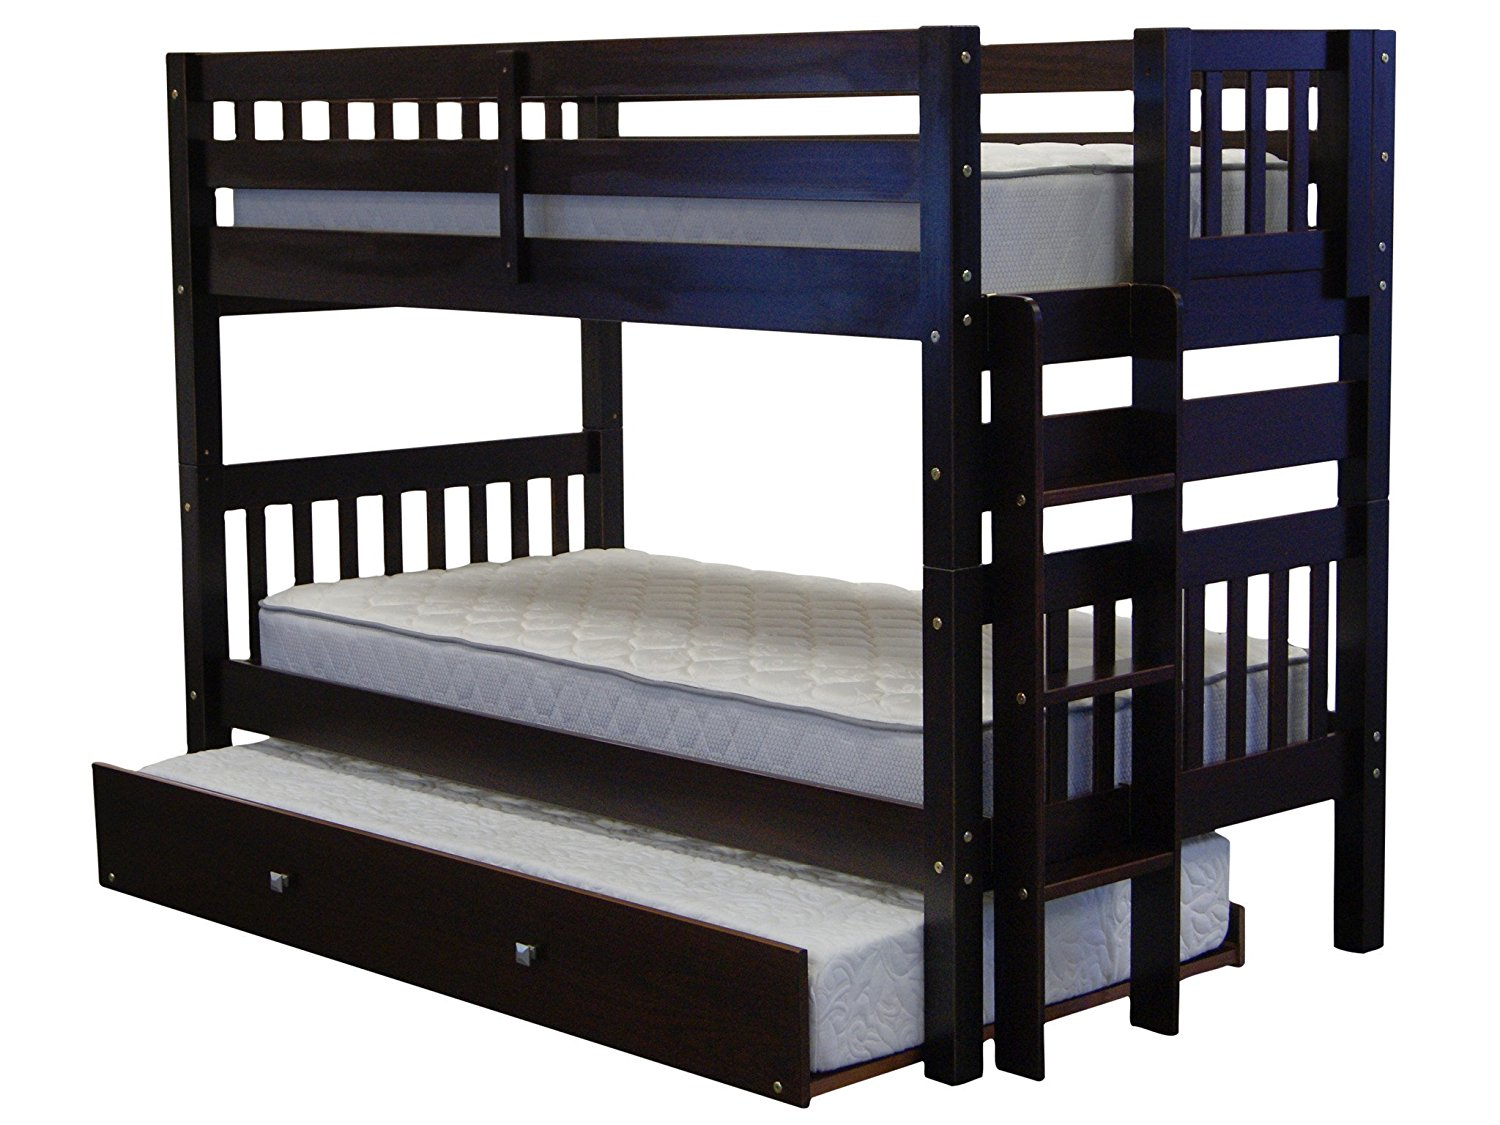 Bedz King Bunk Beds Twin over Twin Mission Style with End Ladder and a Twin Trundle, Cappuccino